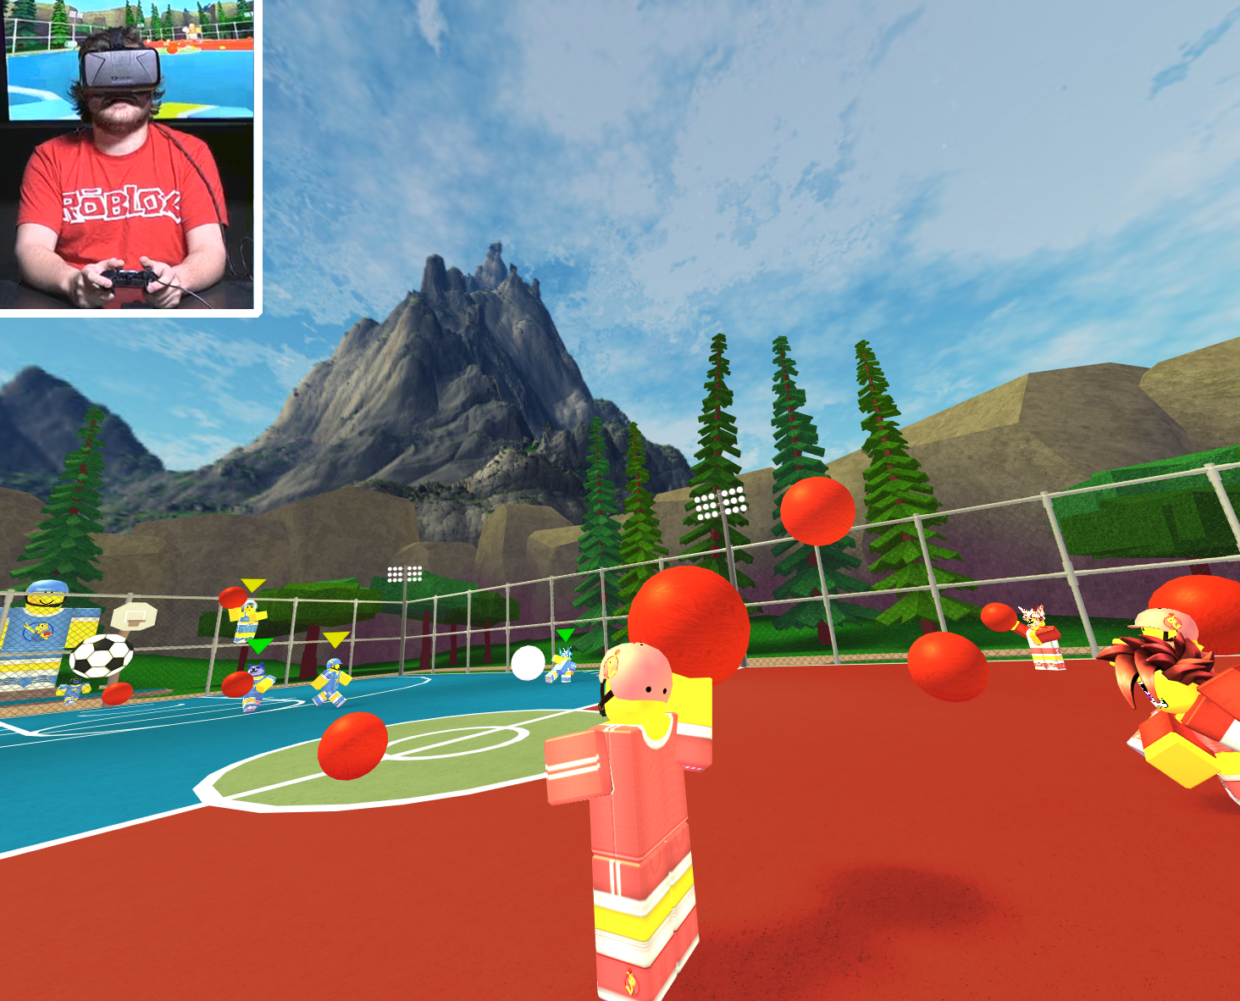 Roblox launches on Oculus Rift bringing user generated social